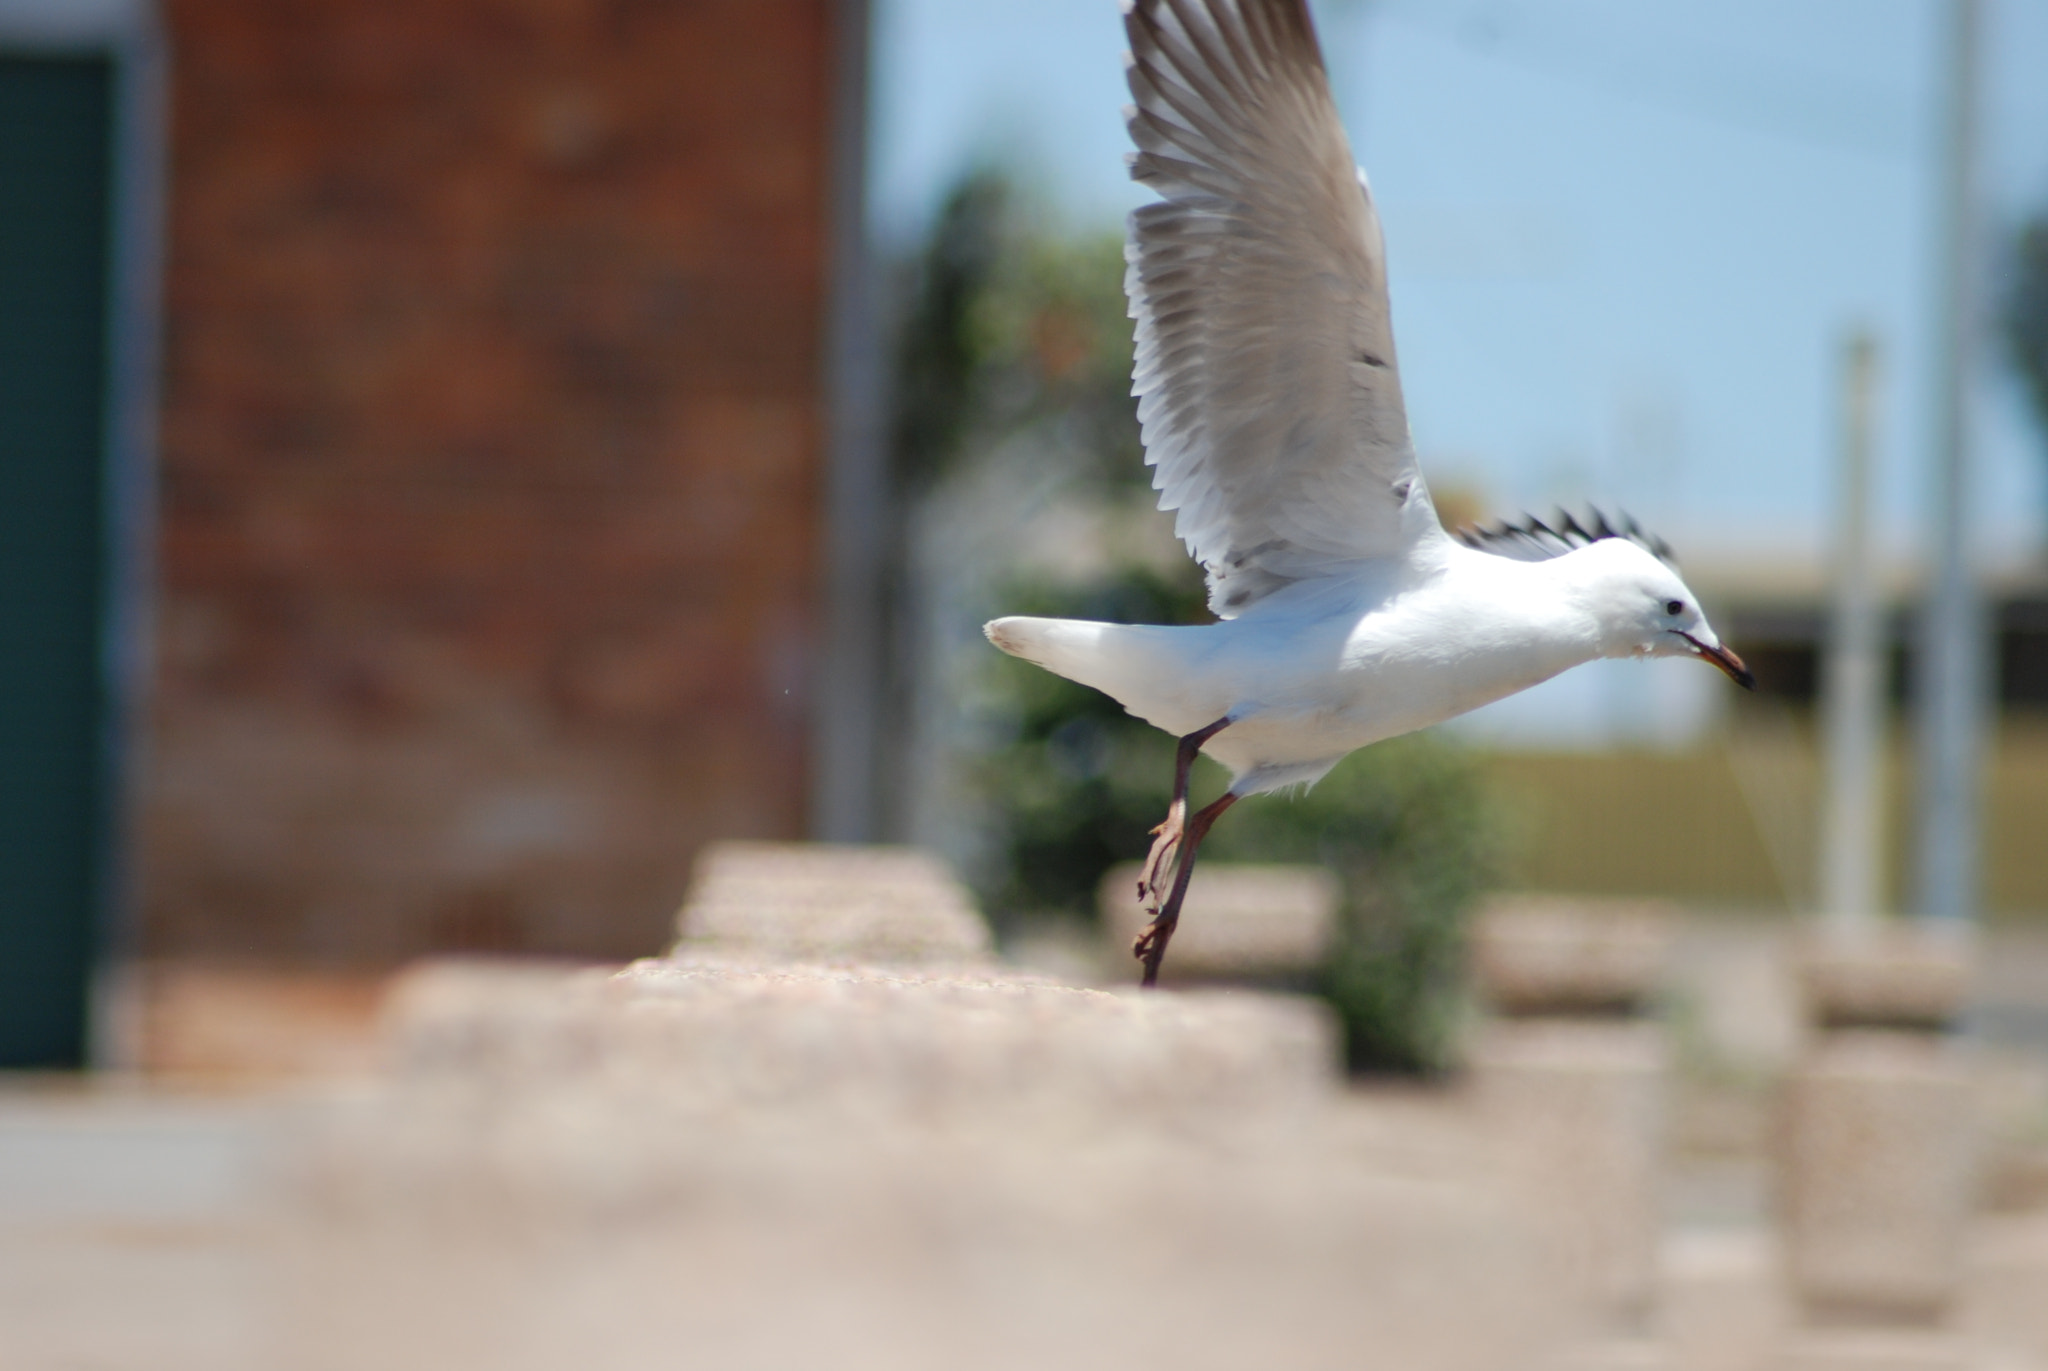 Photograph Seagull in Flight by Robyn Baker on 500px